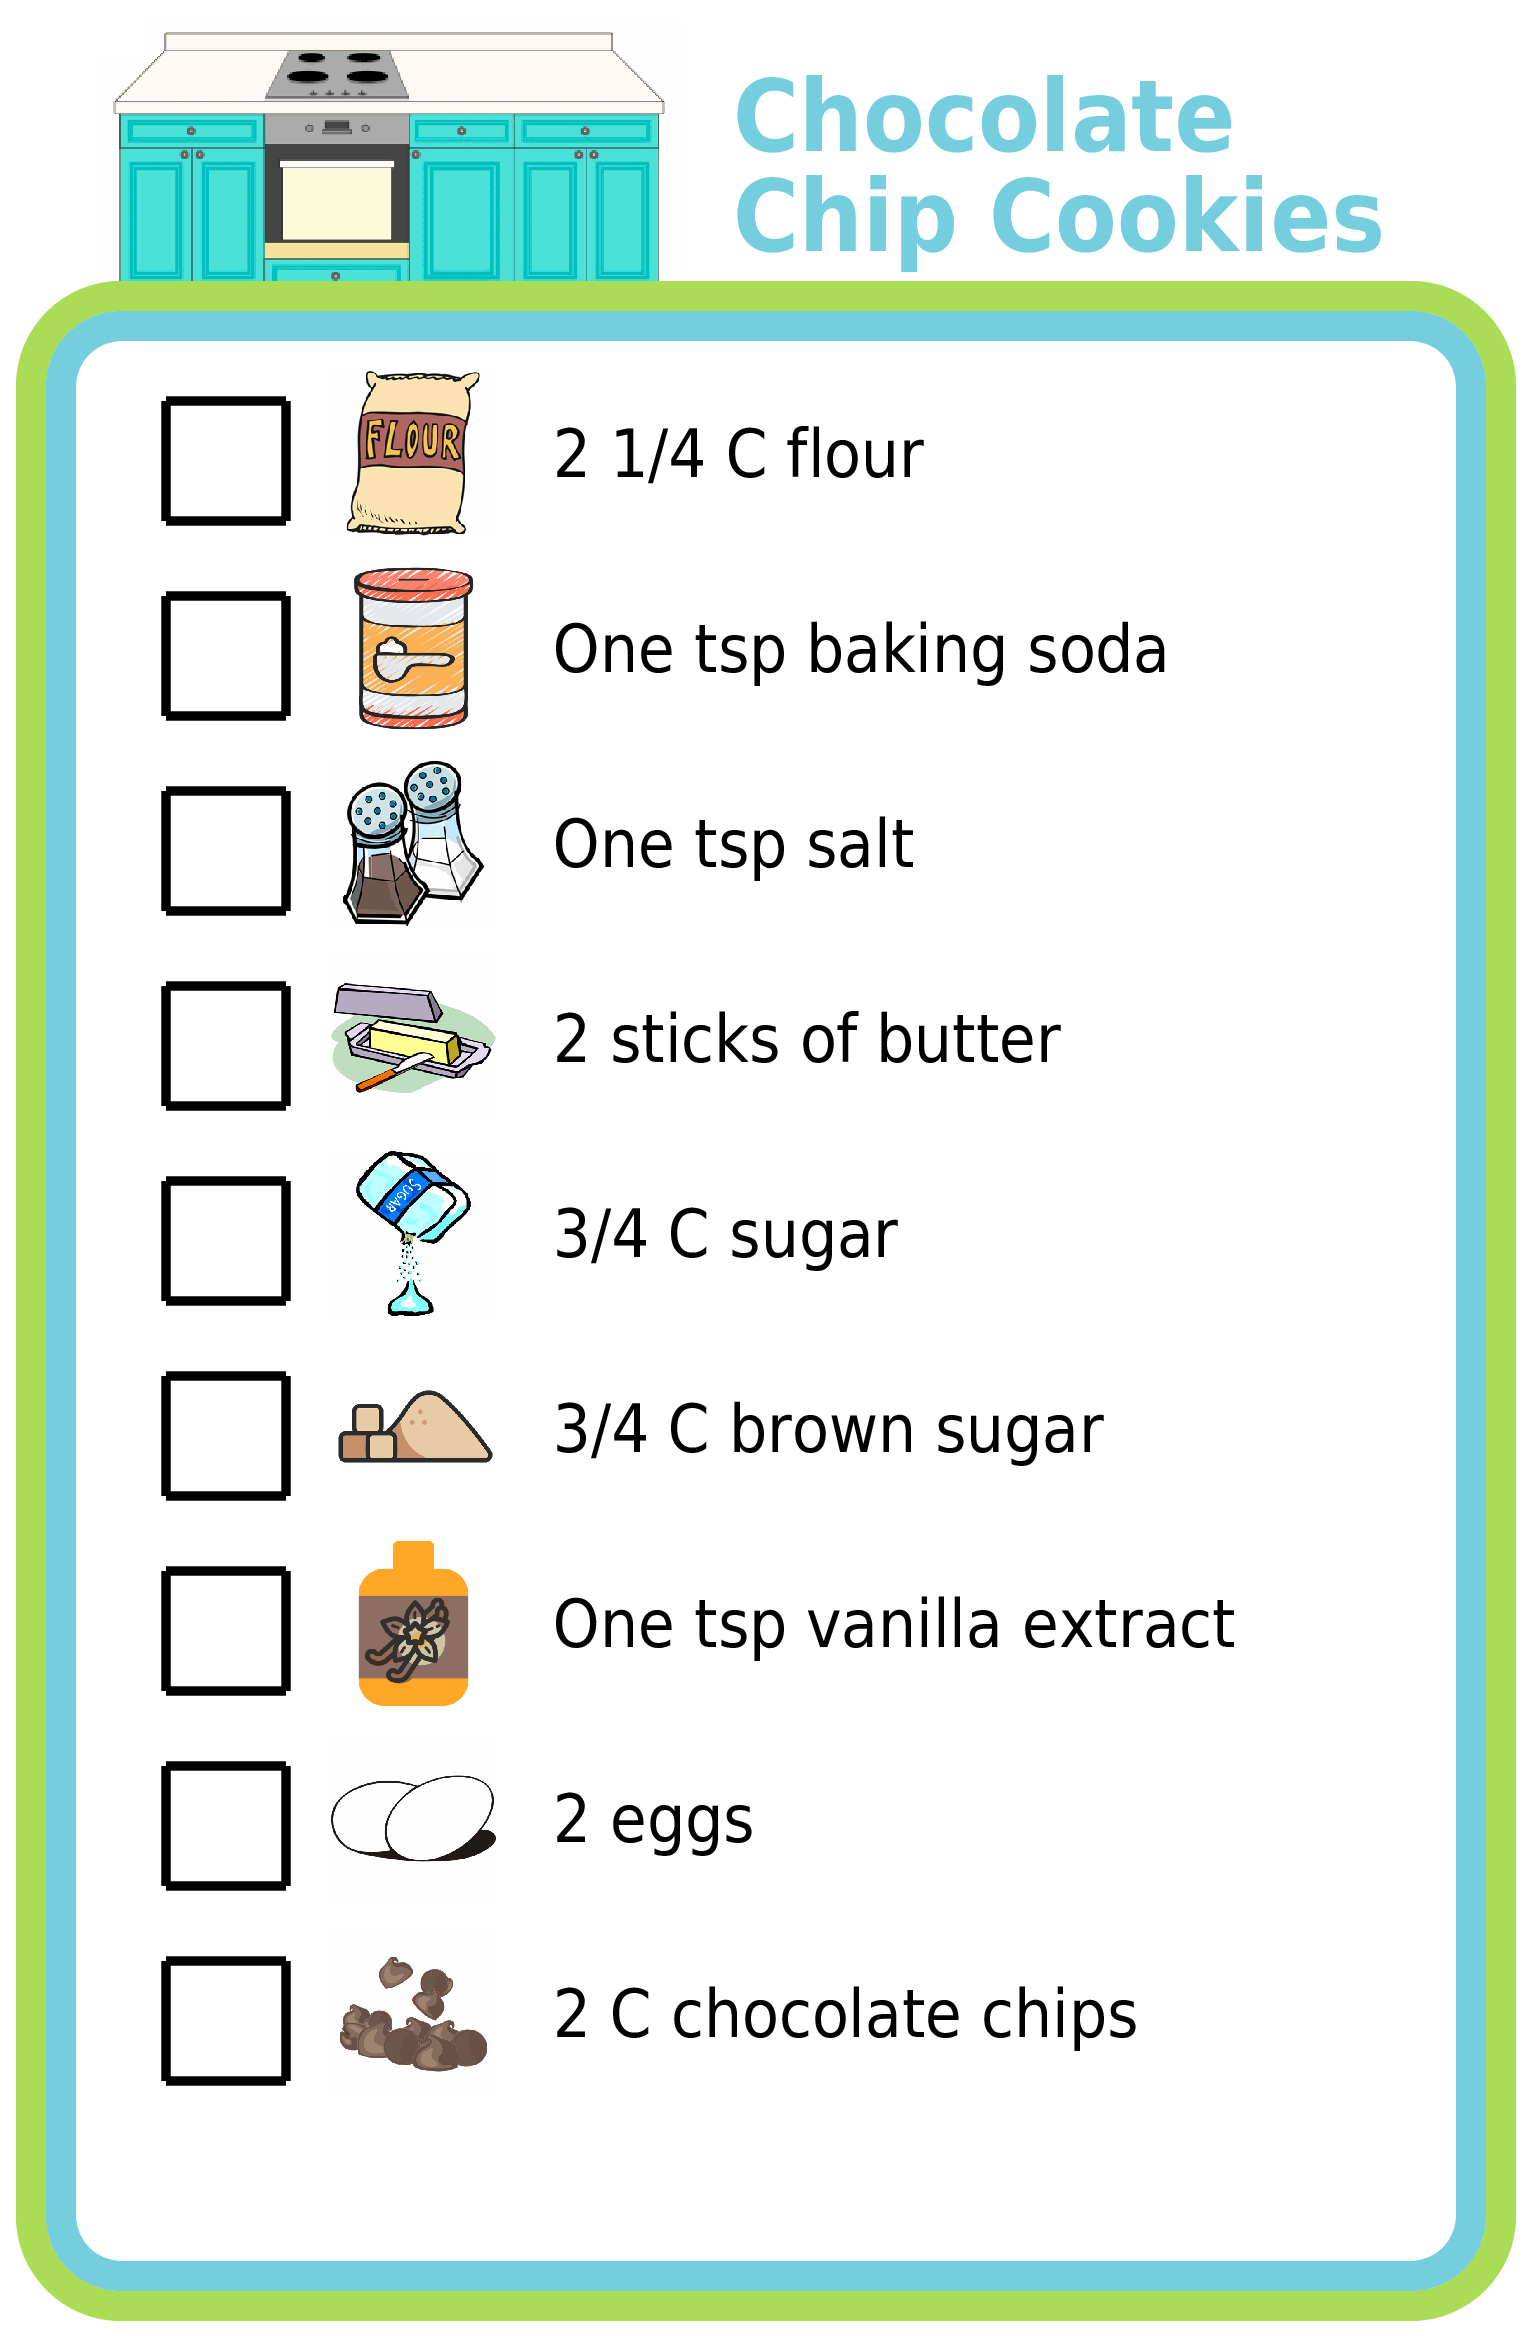 Picture checklist showing recipe for baking chocolate chip cookies